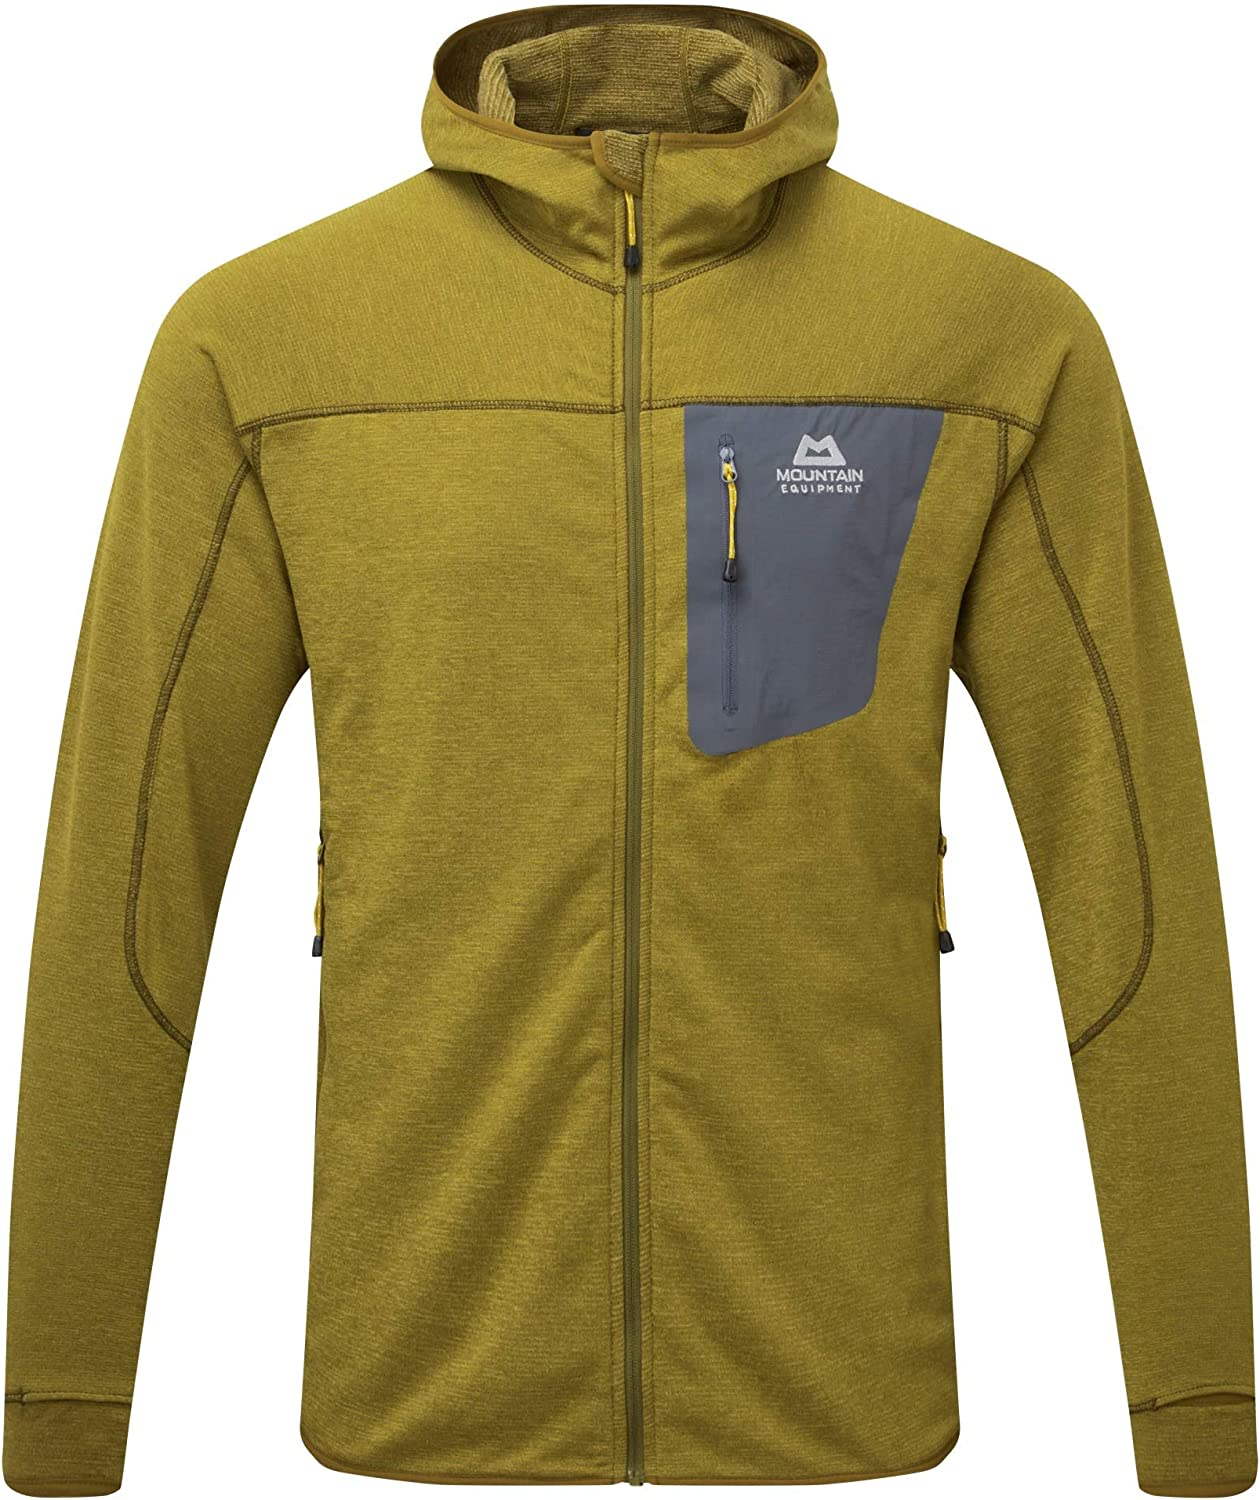 mountain equipment fleece jacke kapuze herren